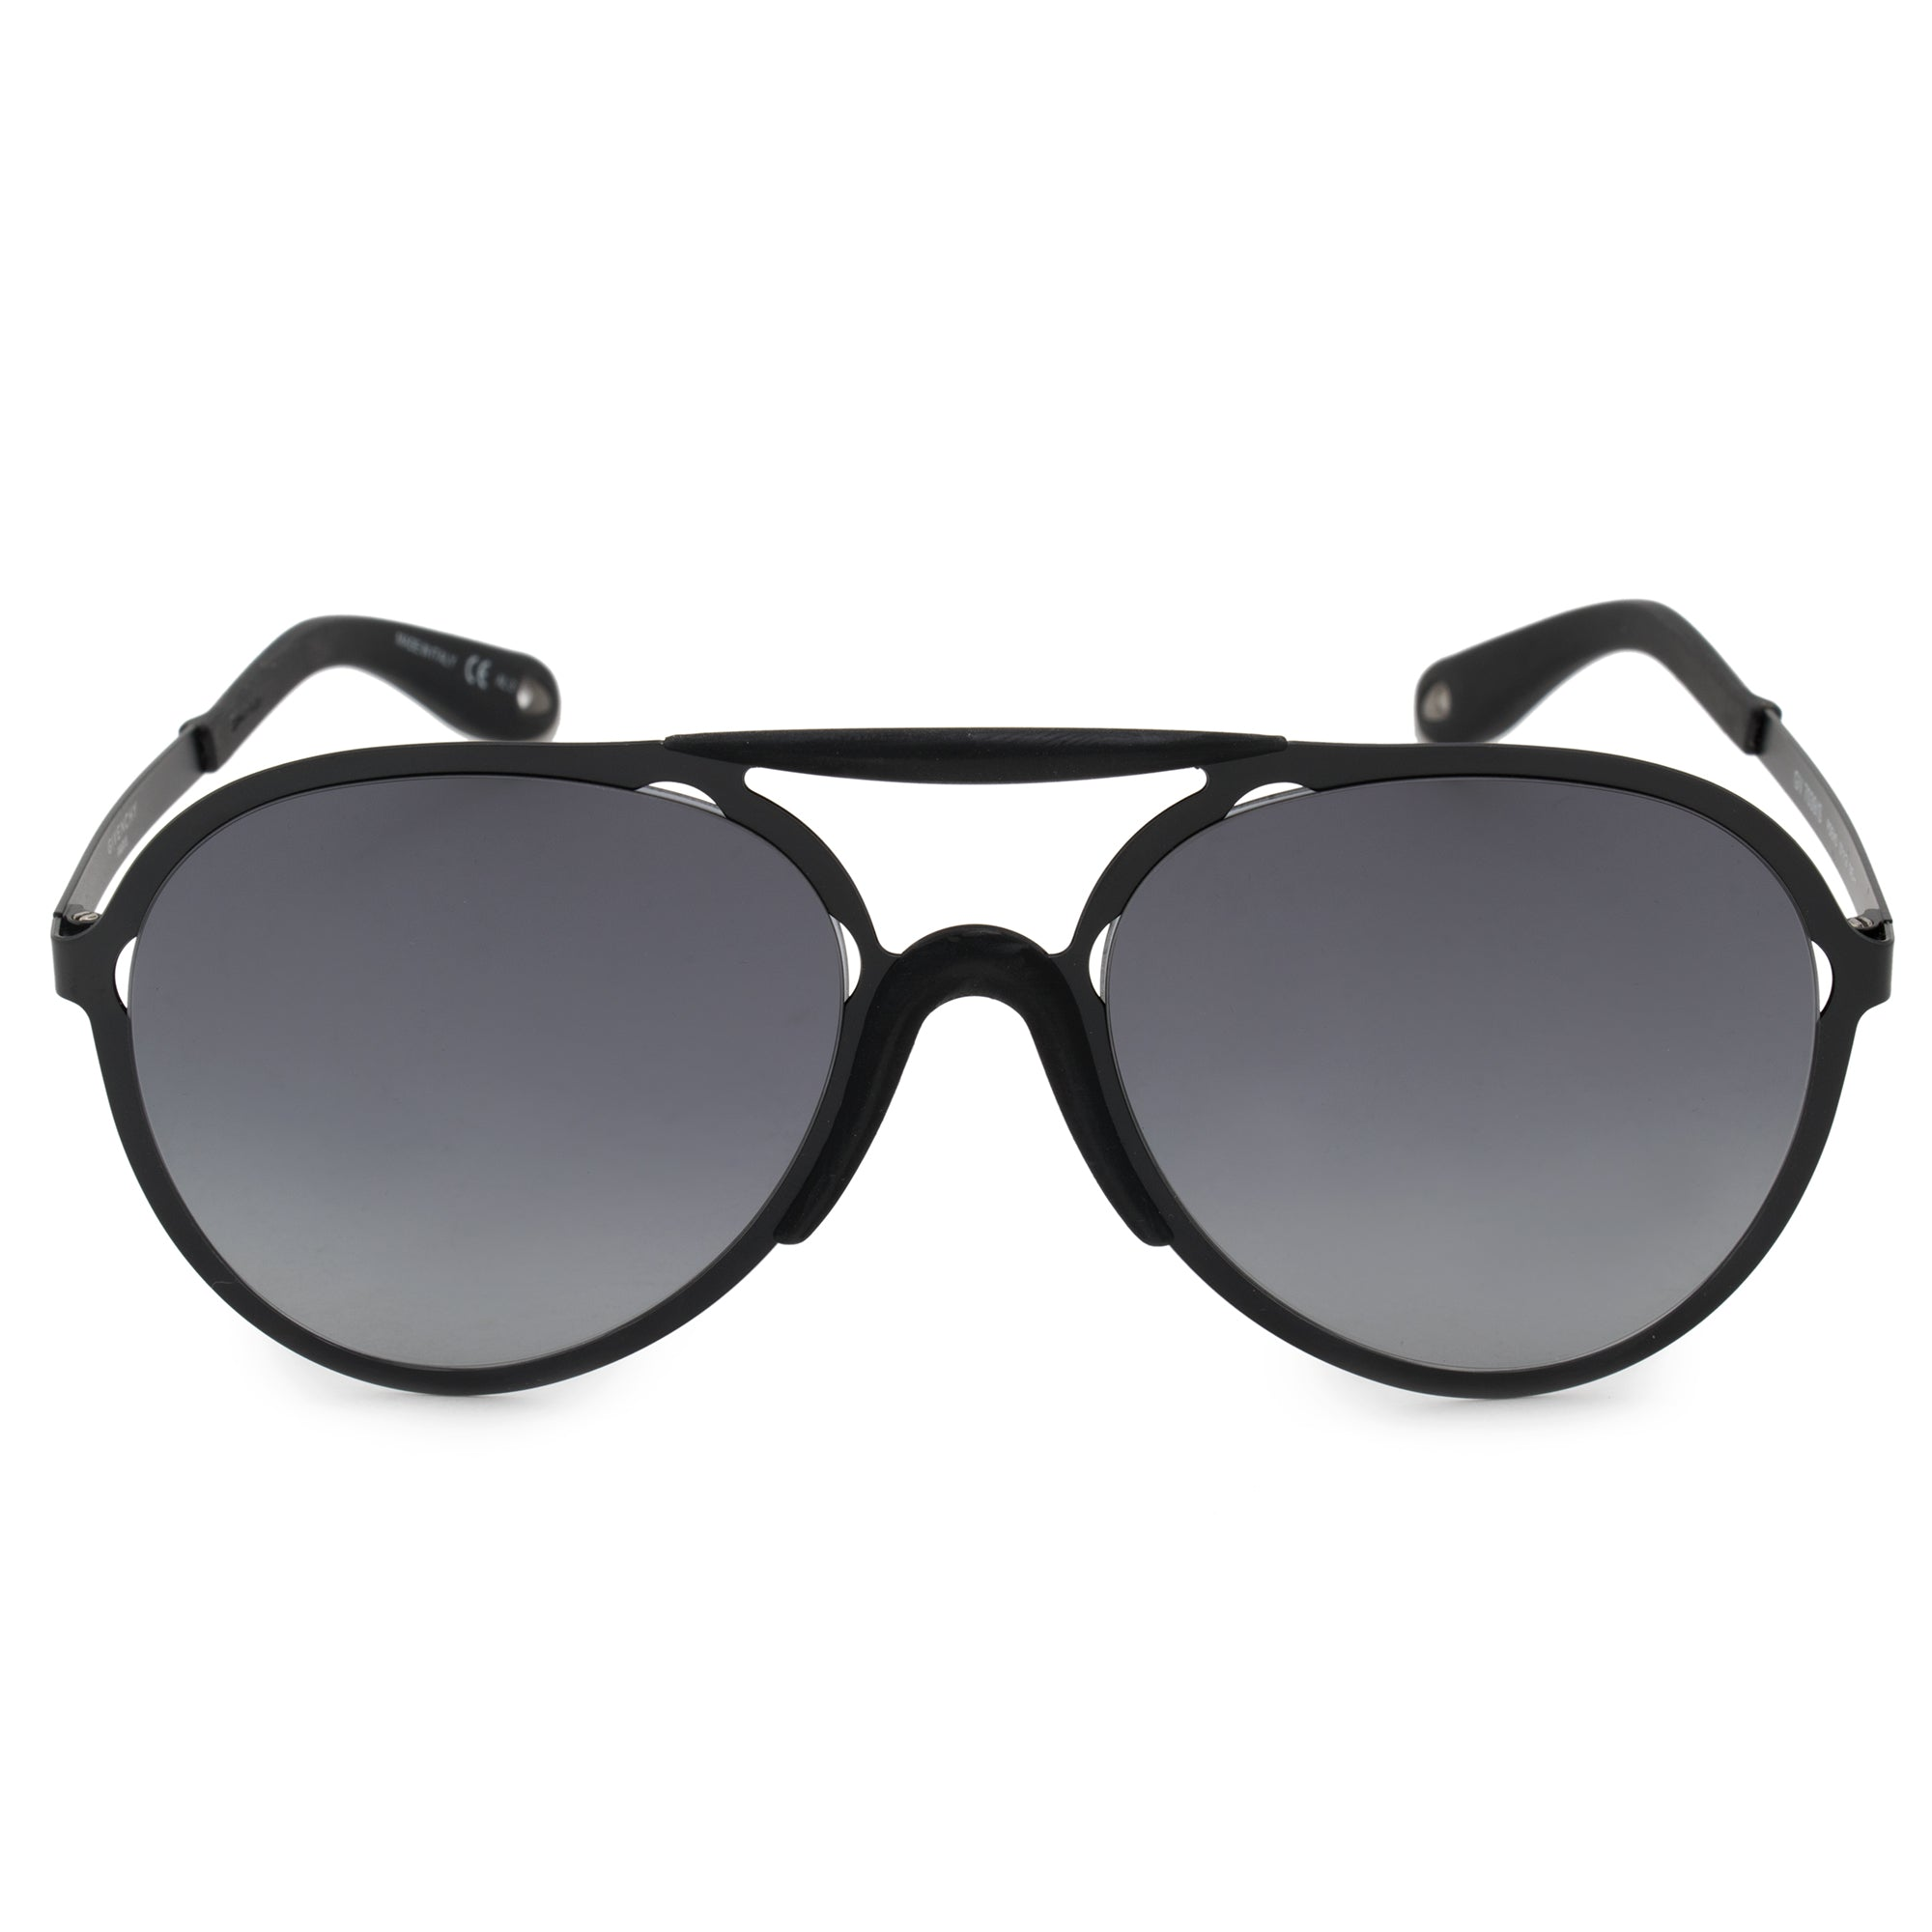 Givenchy Aviator Sunglasses GV7039/S PDE HD 57